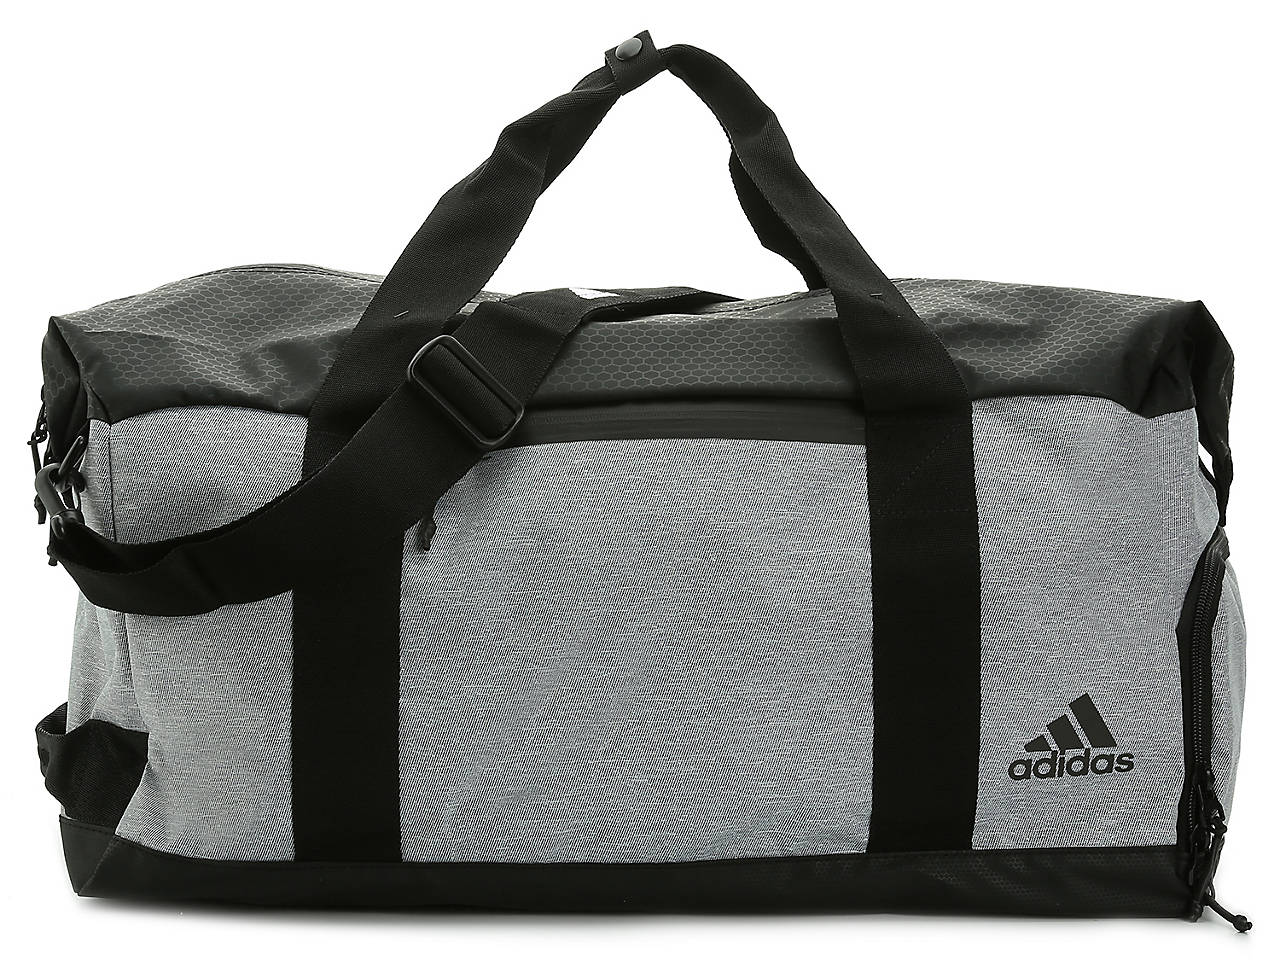 04487942bb adidas Sport ID Gym Bag Women s Handbags   Accessories